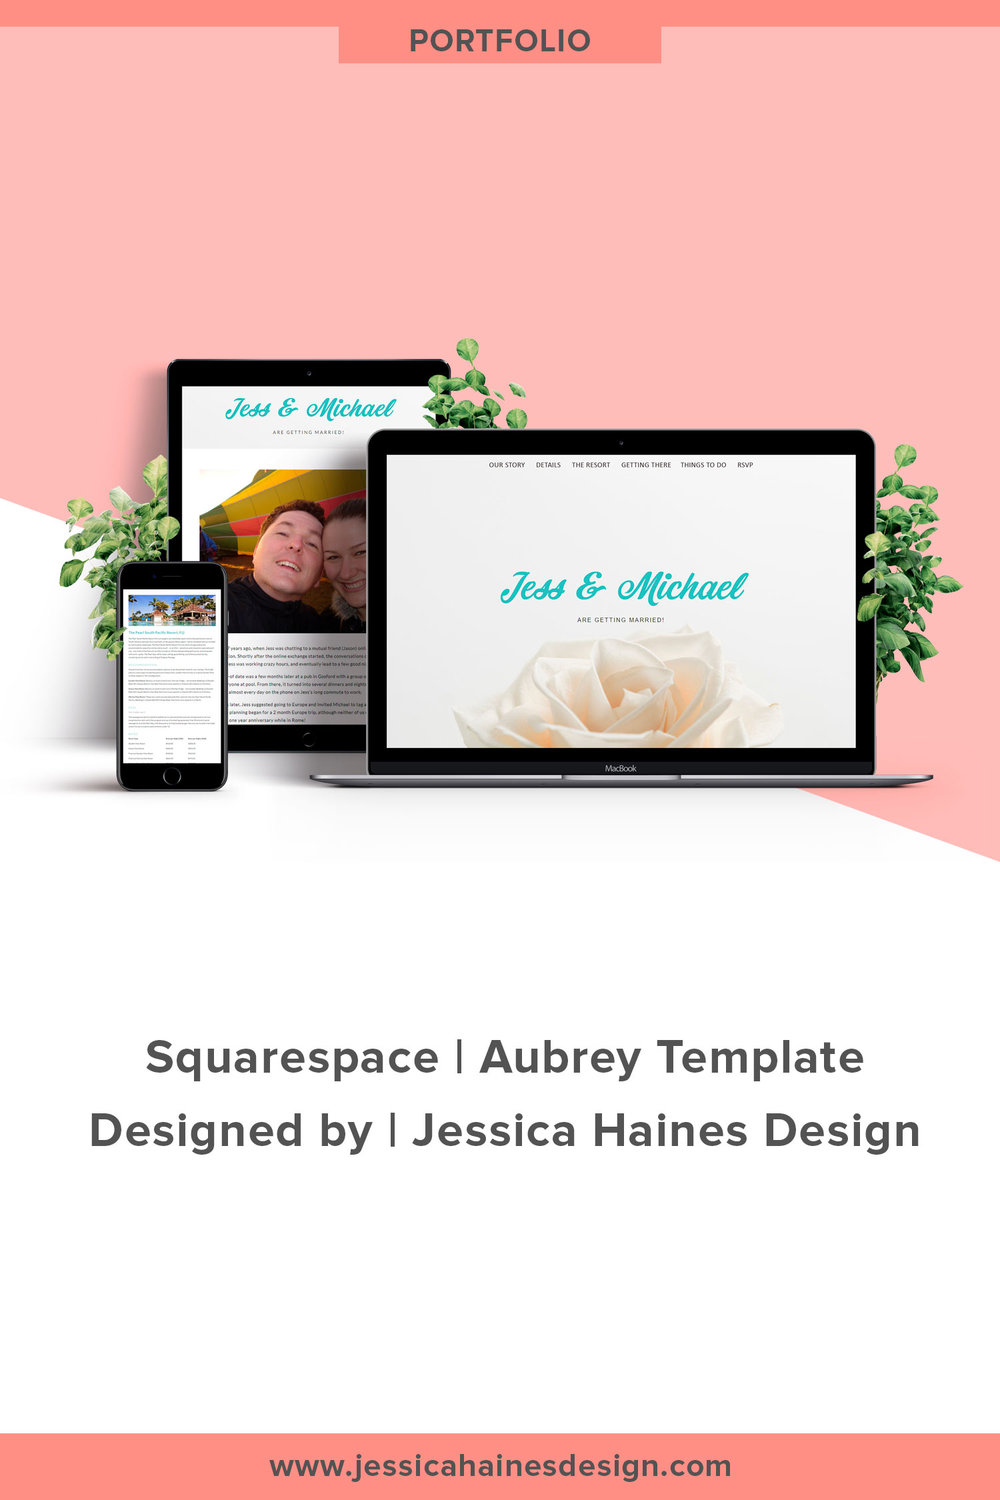 Jess & Michael Are Getting Married | Custom Squarespace wedding website. If you want to help take your business to the next level, click through to see what your new Squarespace website and brand refresh could look like! |  www.jessicahainesdesign.com